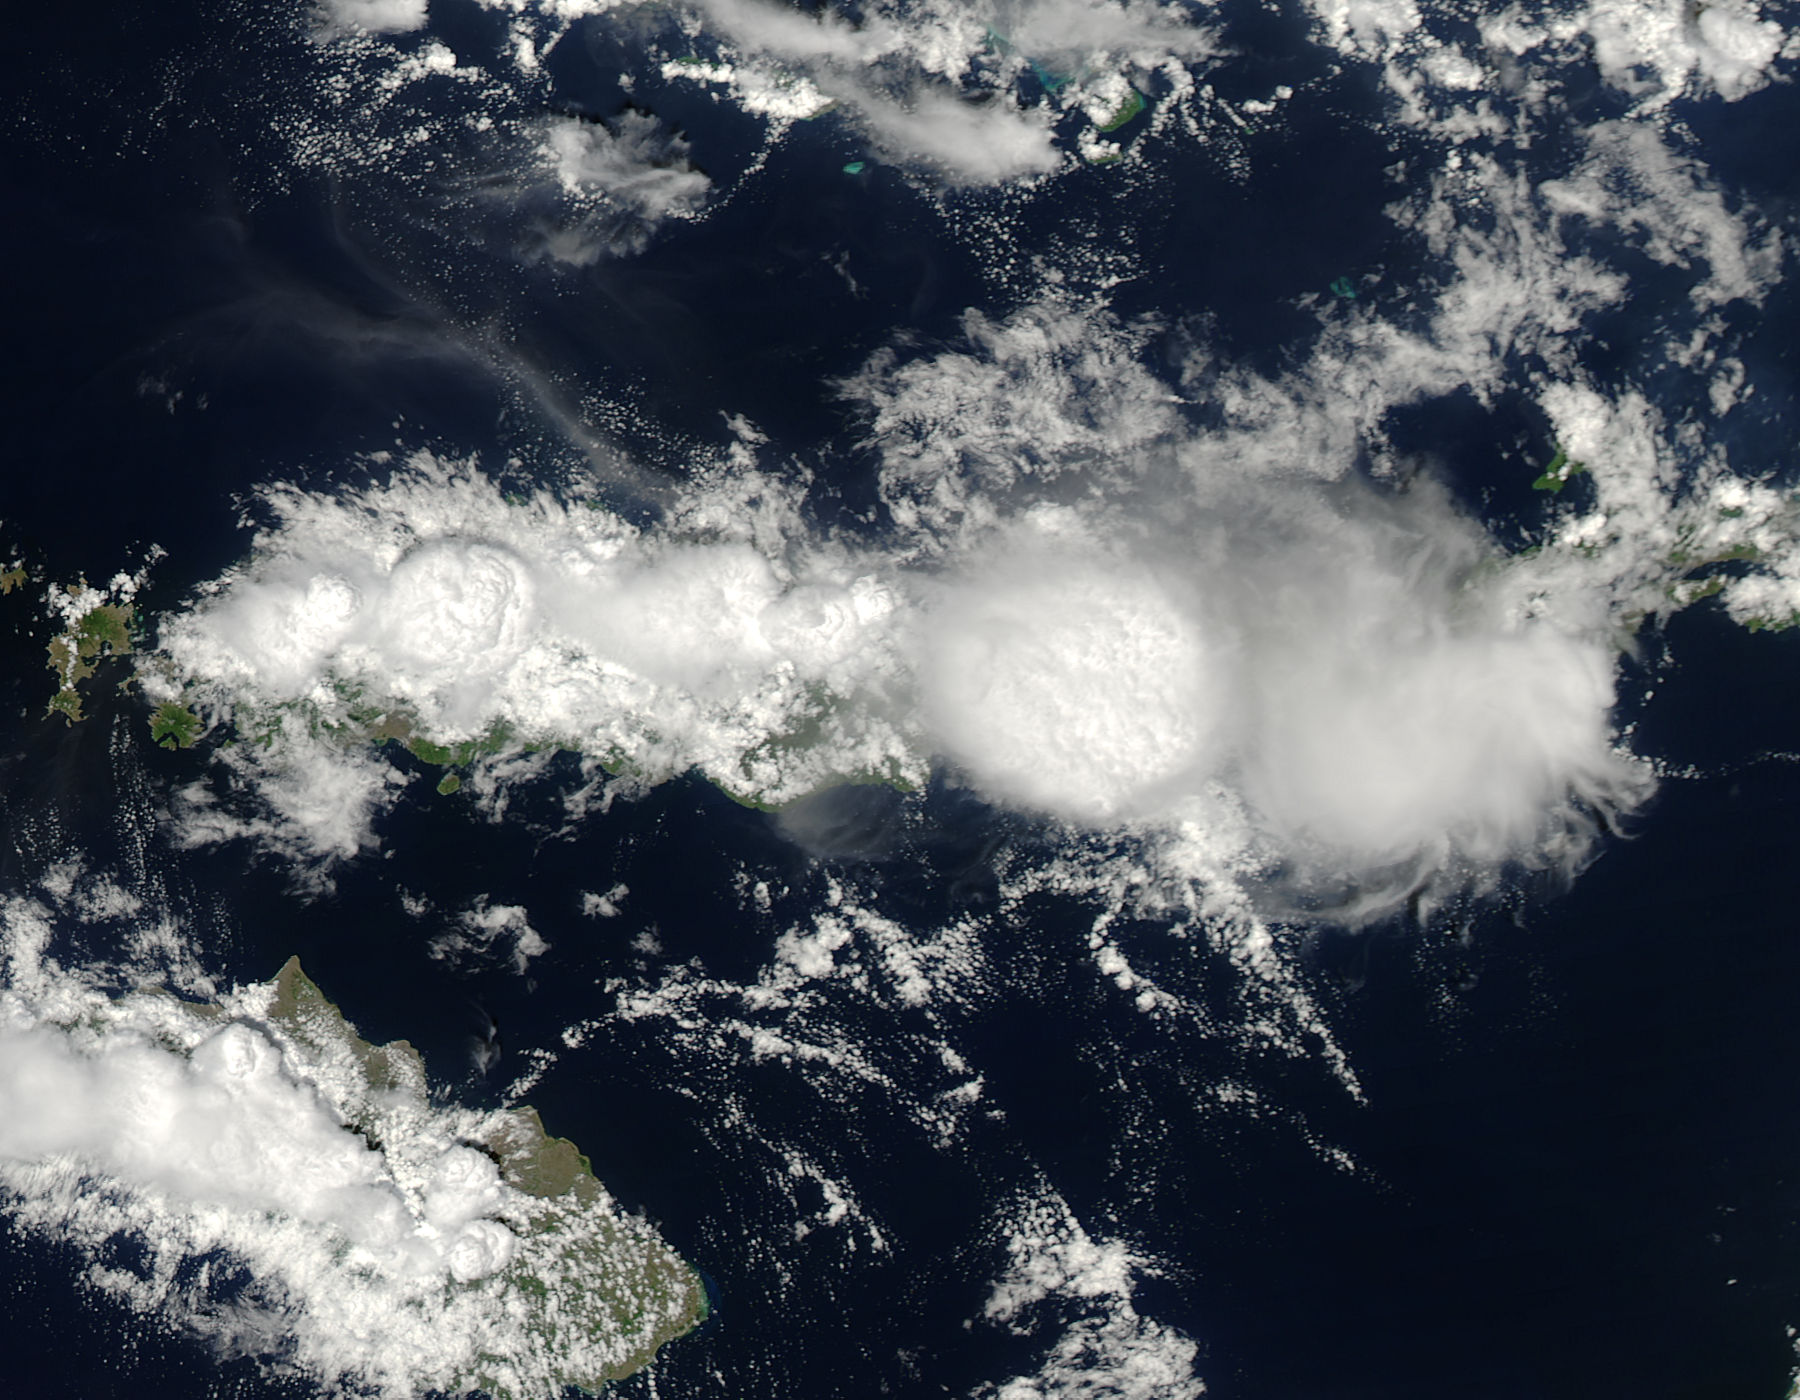 Cloud towers, seen from above